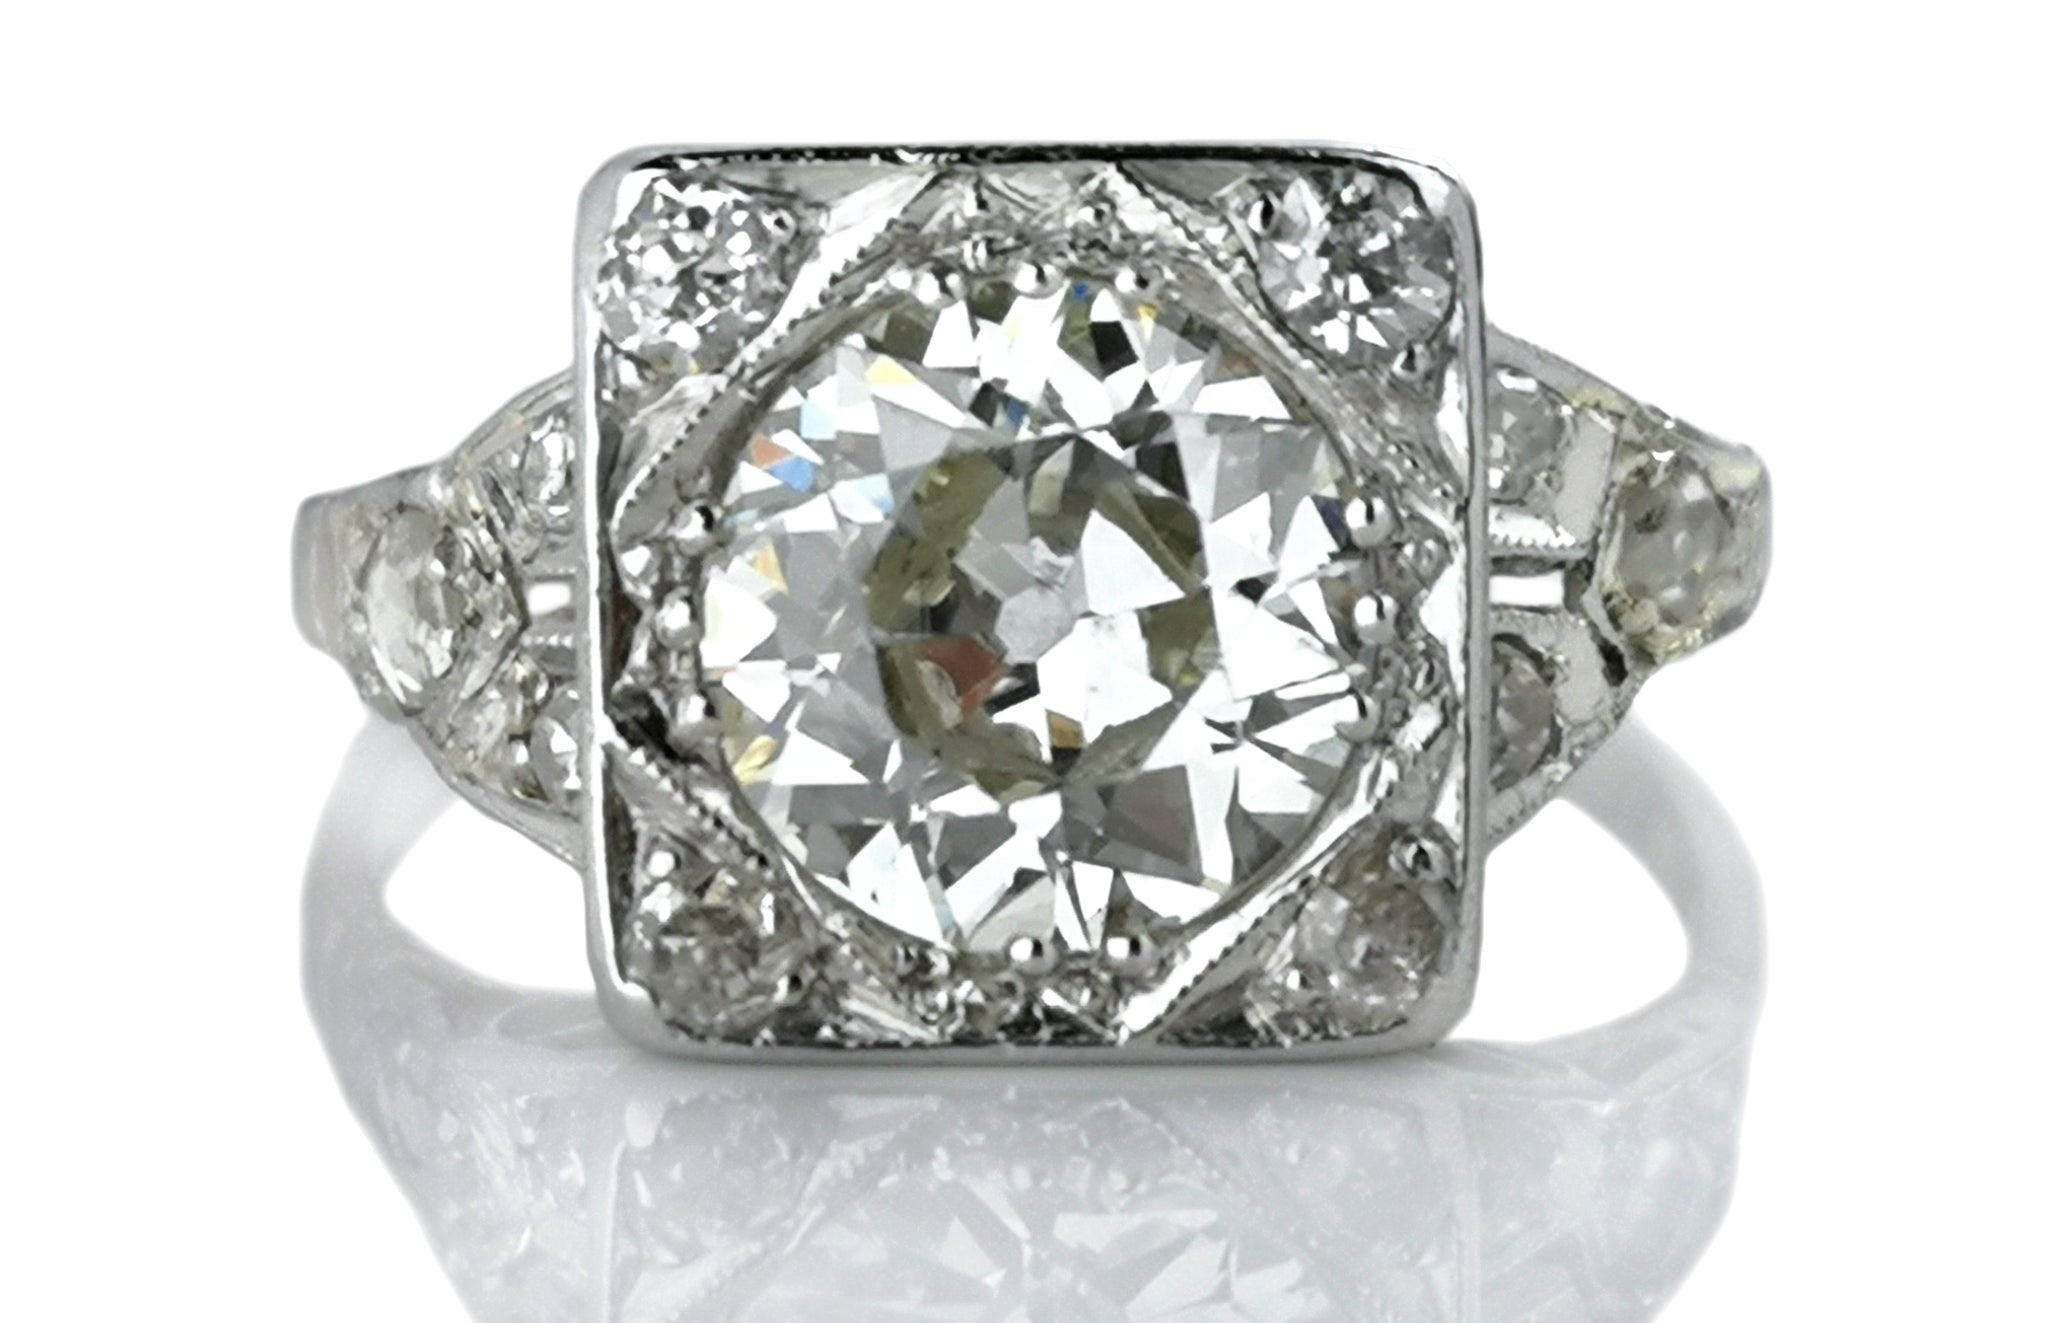 Antique Art Deco 1.44ct Old European Cut Diamond Engagement Ring